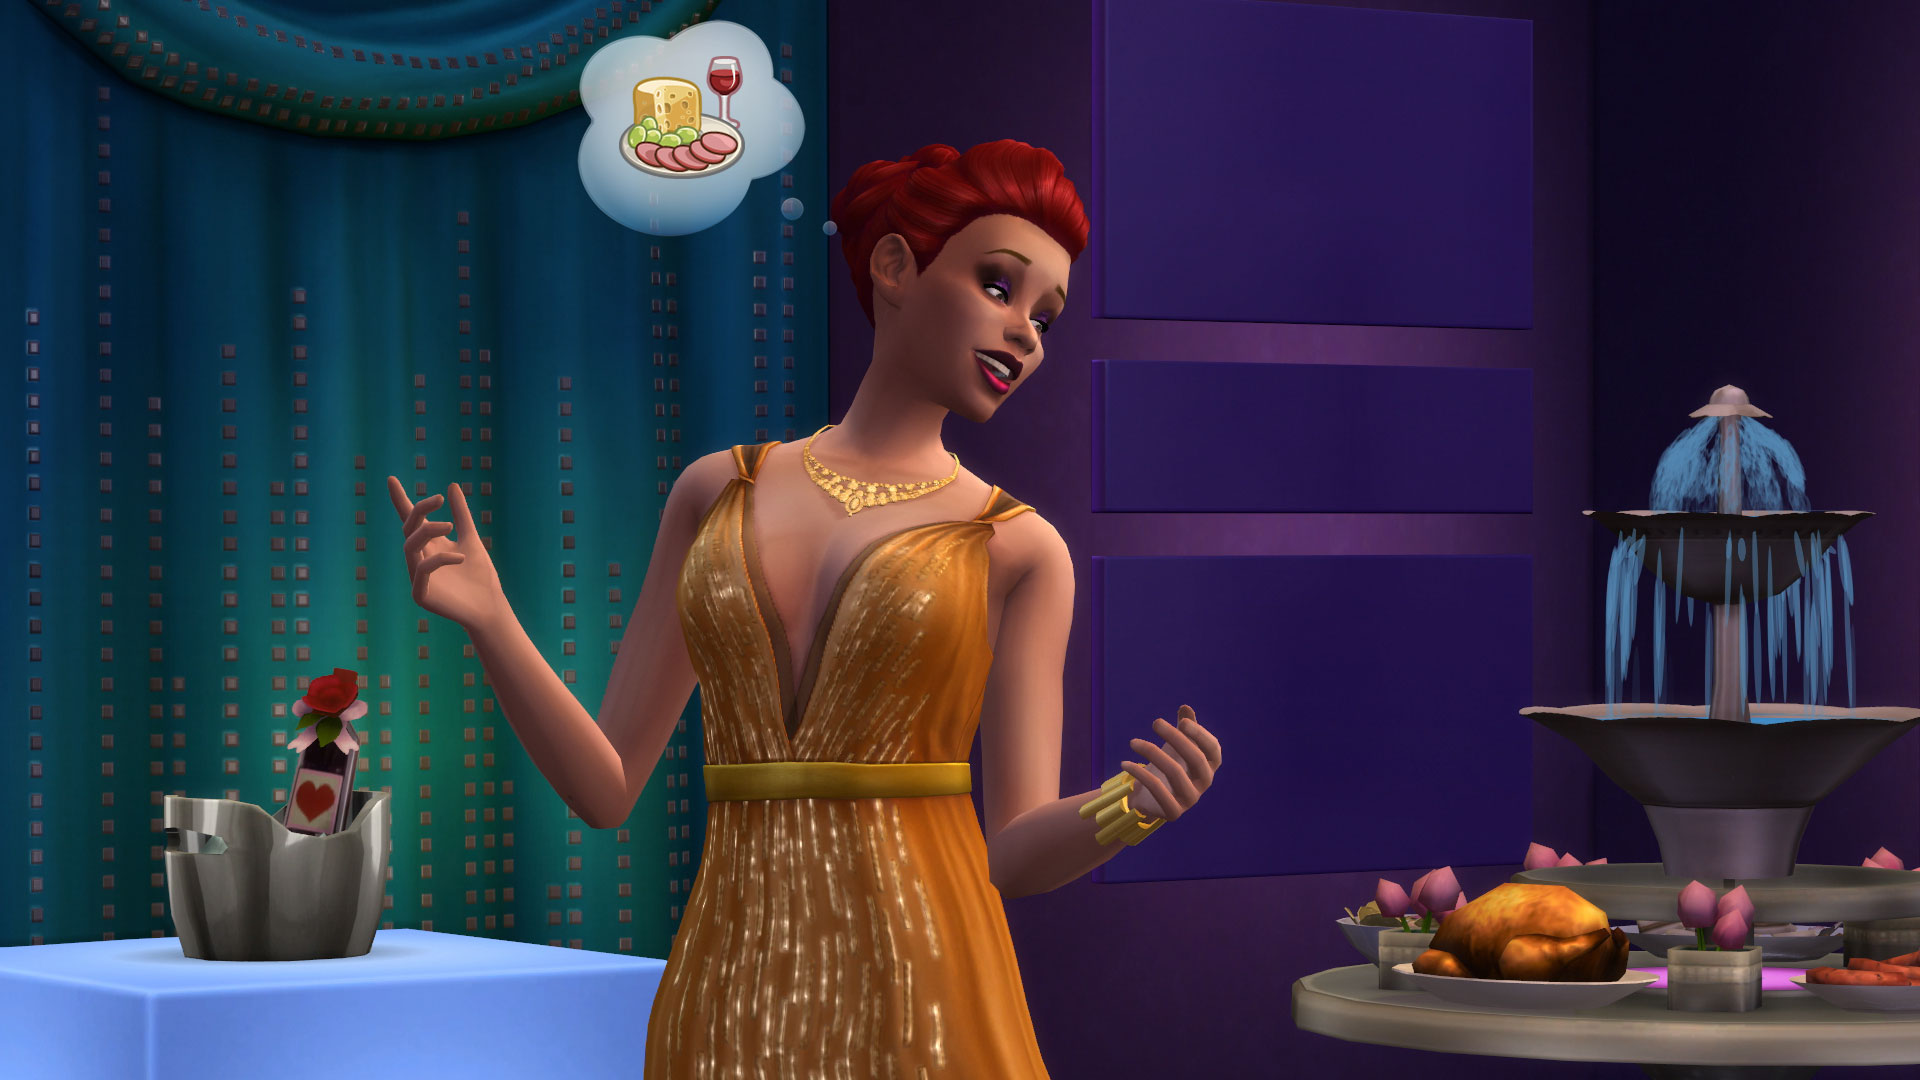 New Screenshots Revealed From The Sims 4 Luxury Stuff Pack